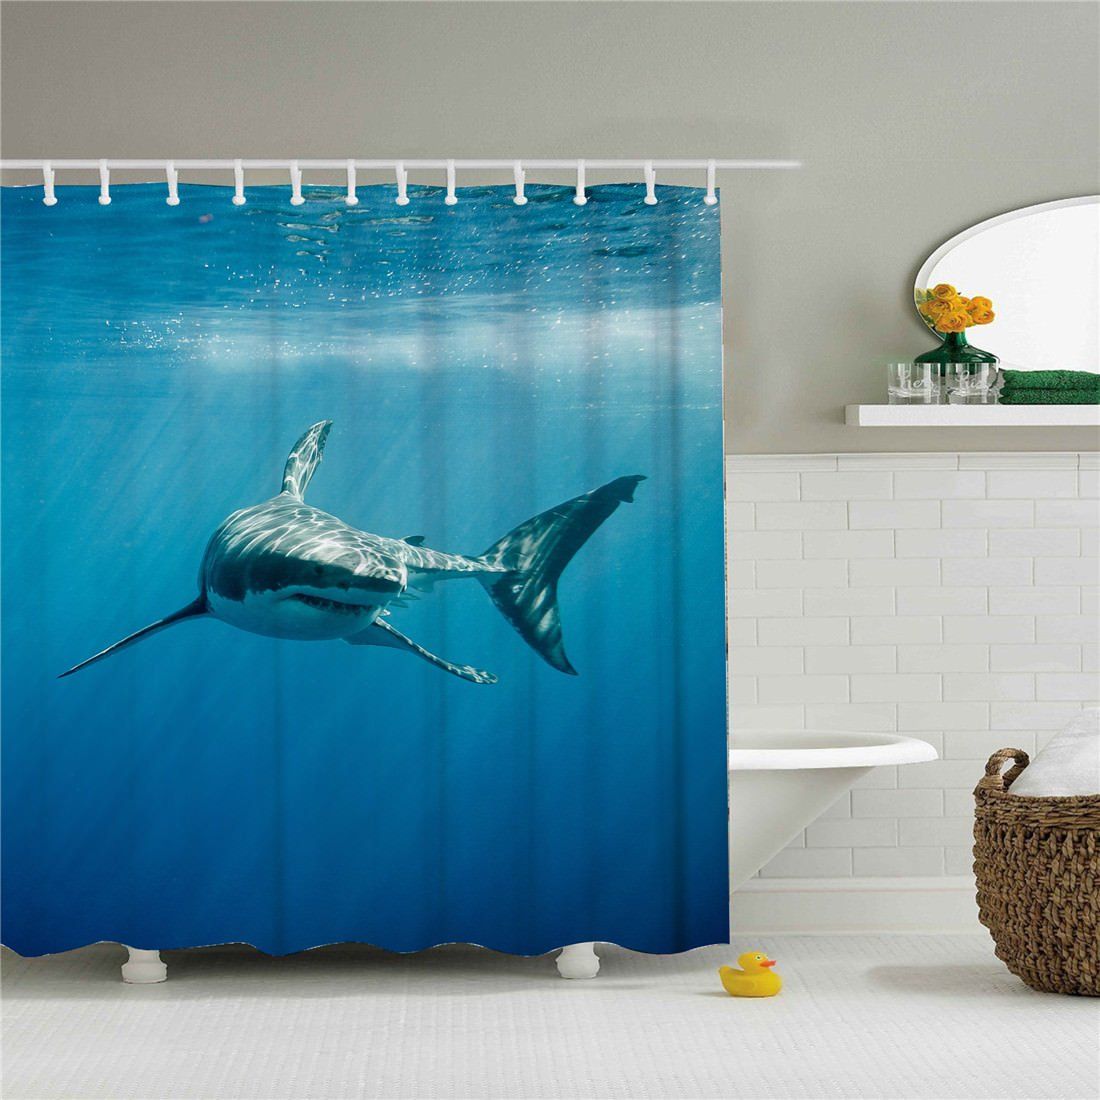 starlight-Bracele Bathroom shower curtain, shark swimming beauty screen, blue.Fabric Shower Curtain Set, Color Painting Polyester Shower Curtain, Quick Dry Machine Washable, Violet